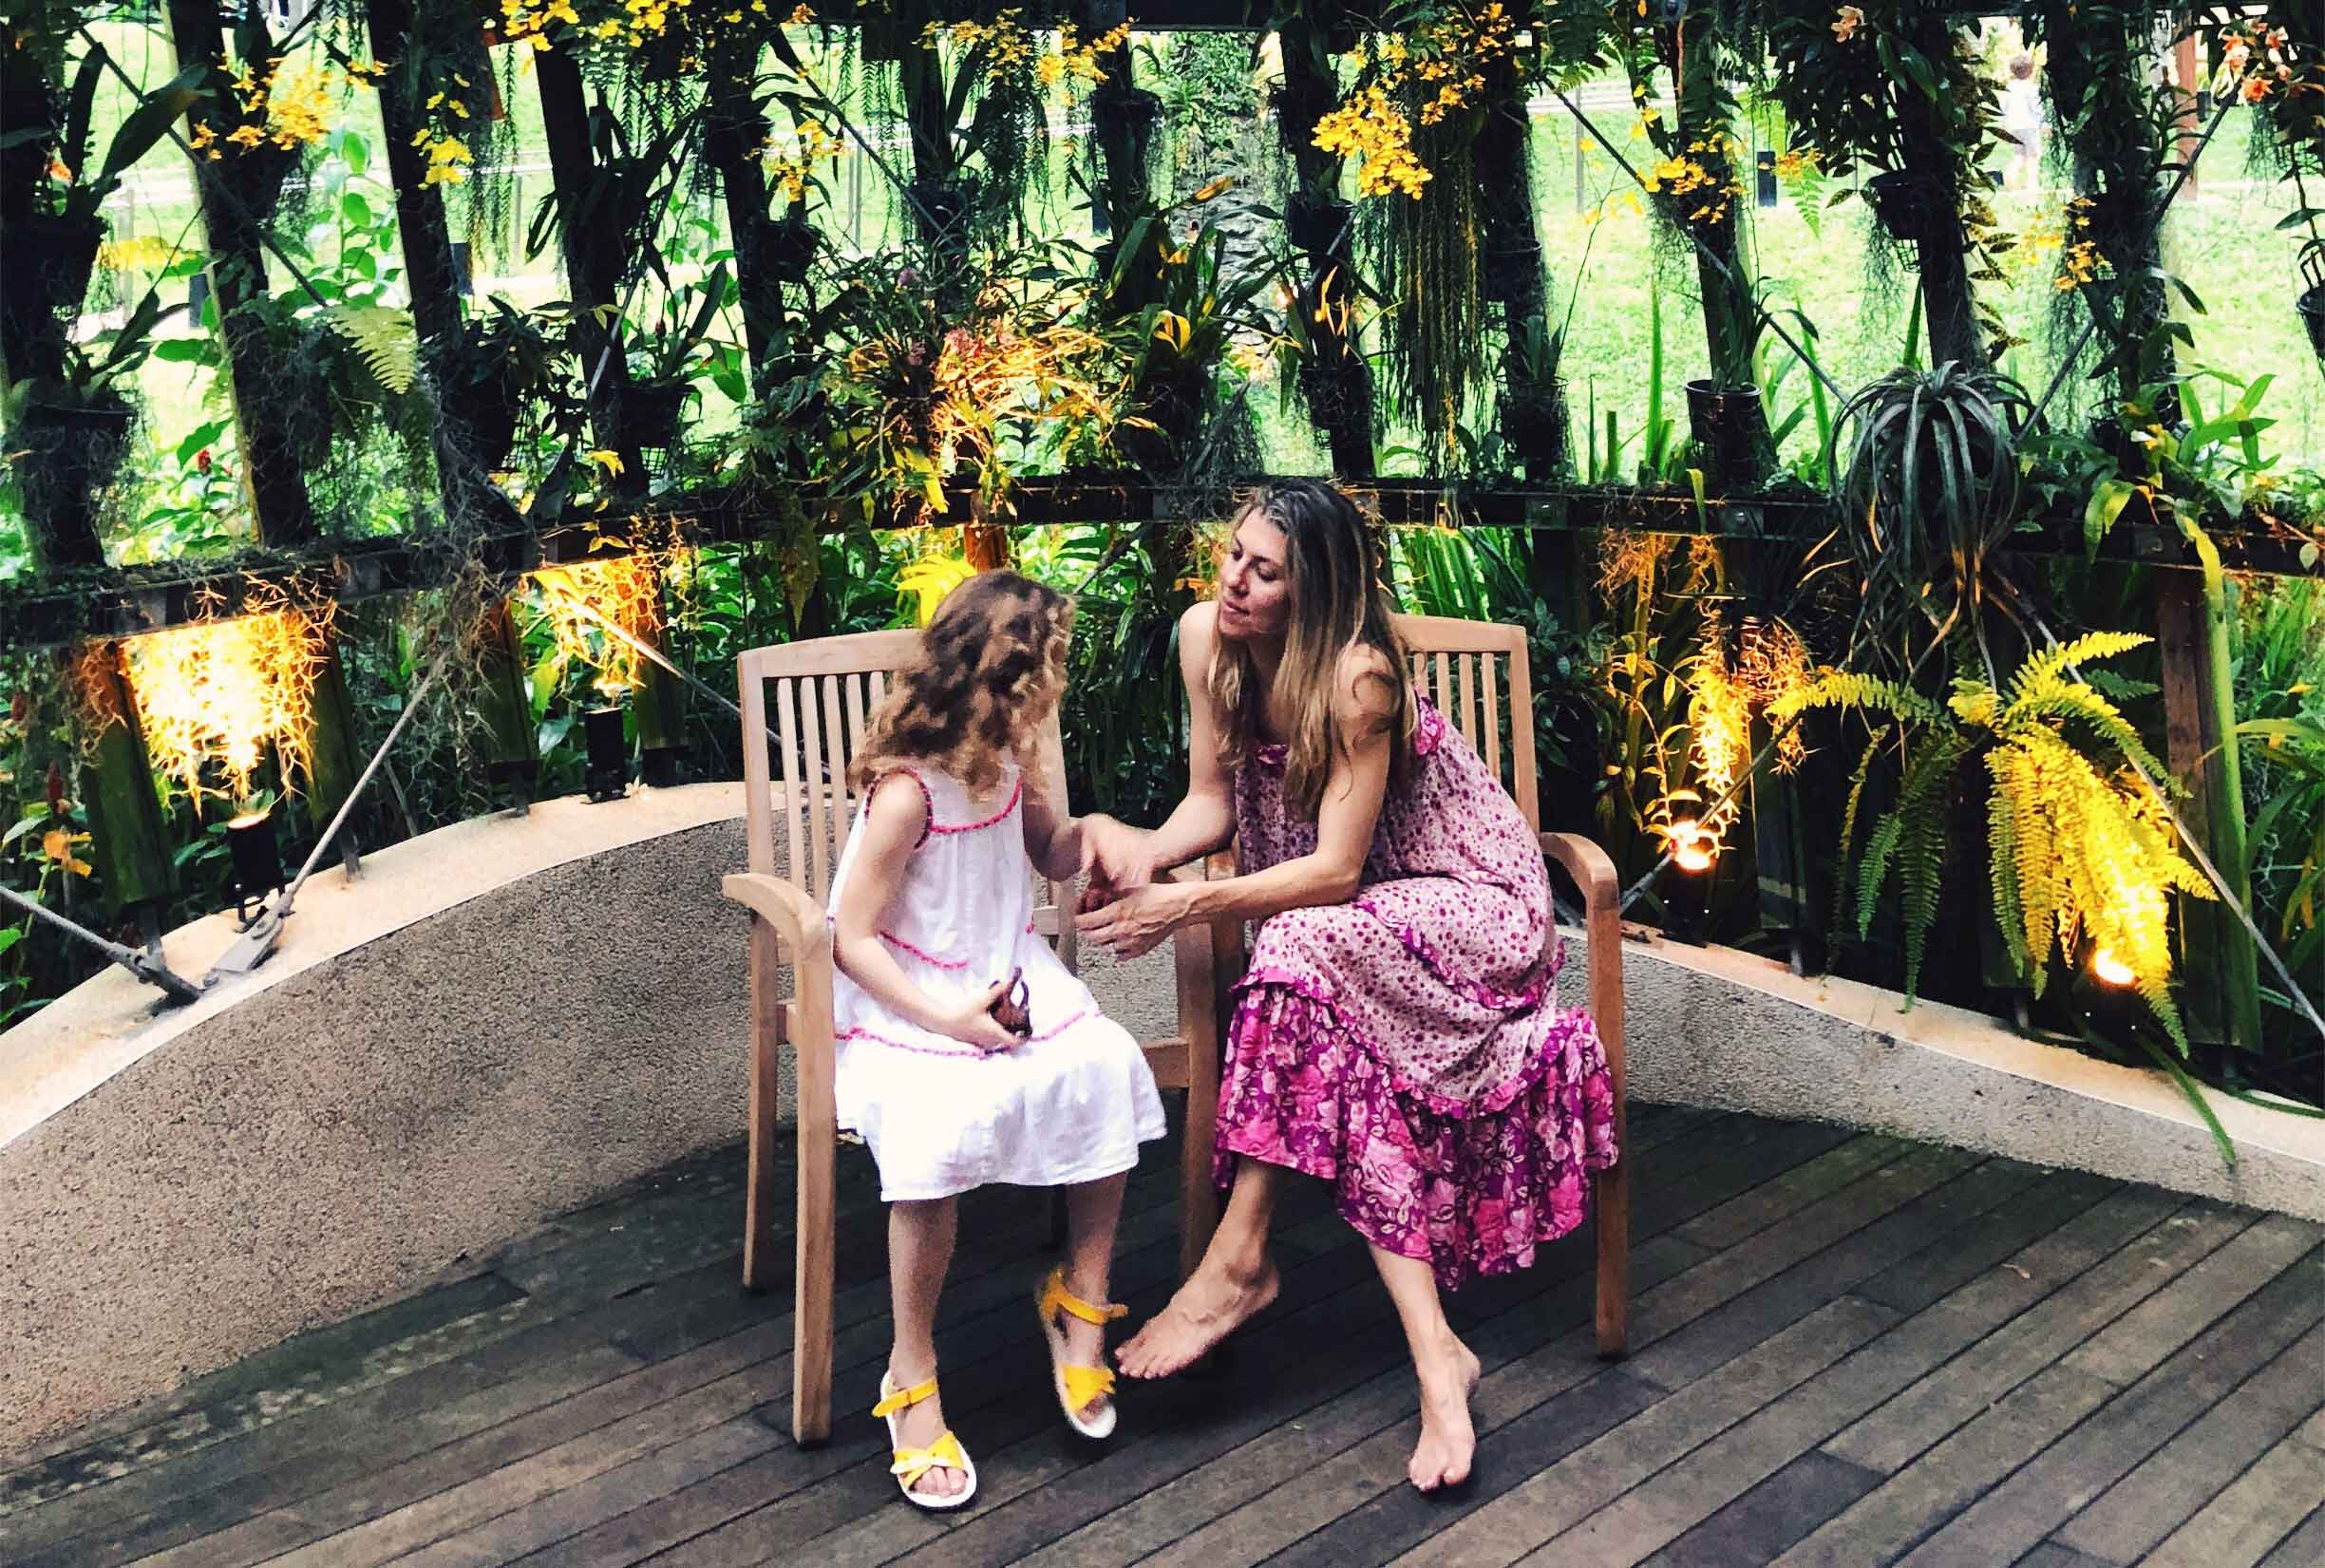 Zoie Kingsbery Coe On Travelling with Kids – Tips from the Woman who Made it her Mission